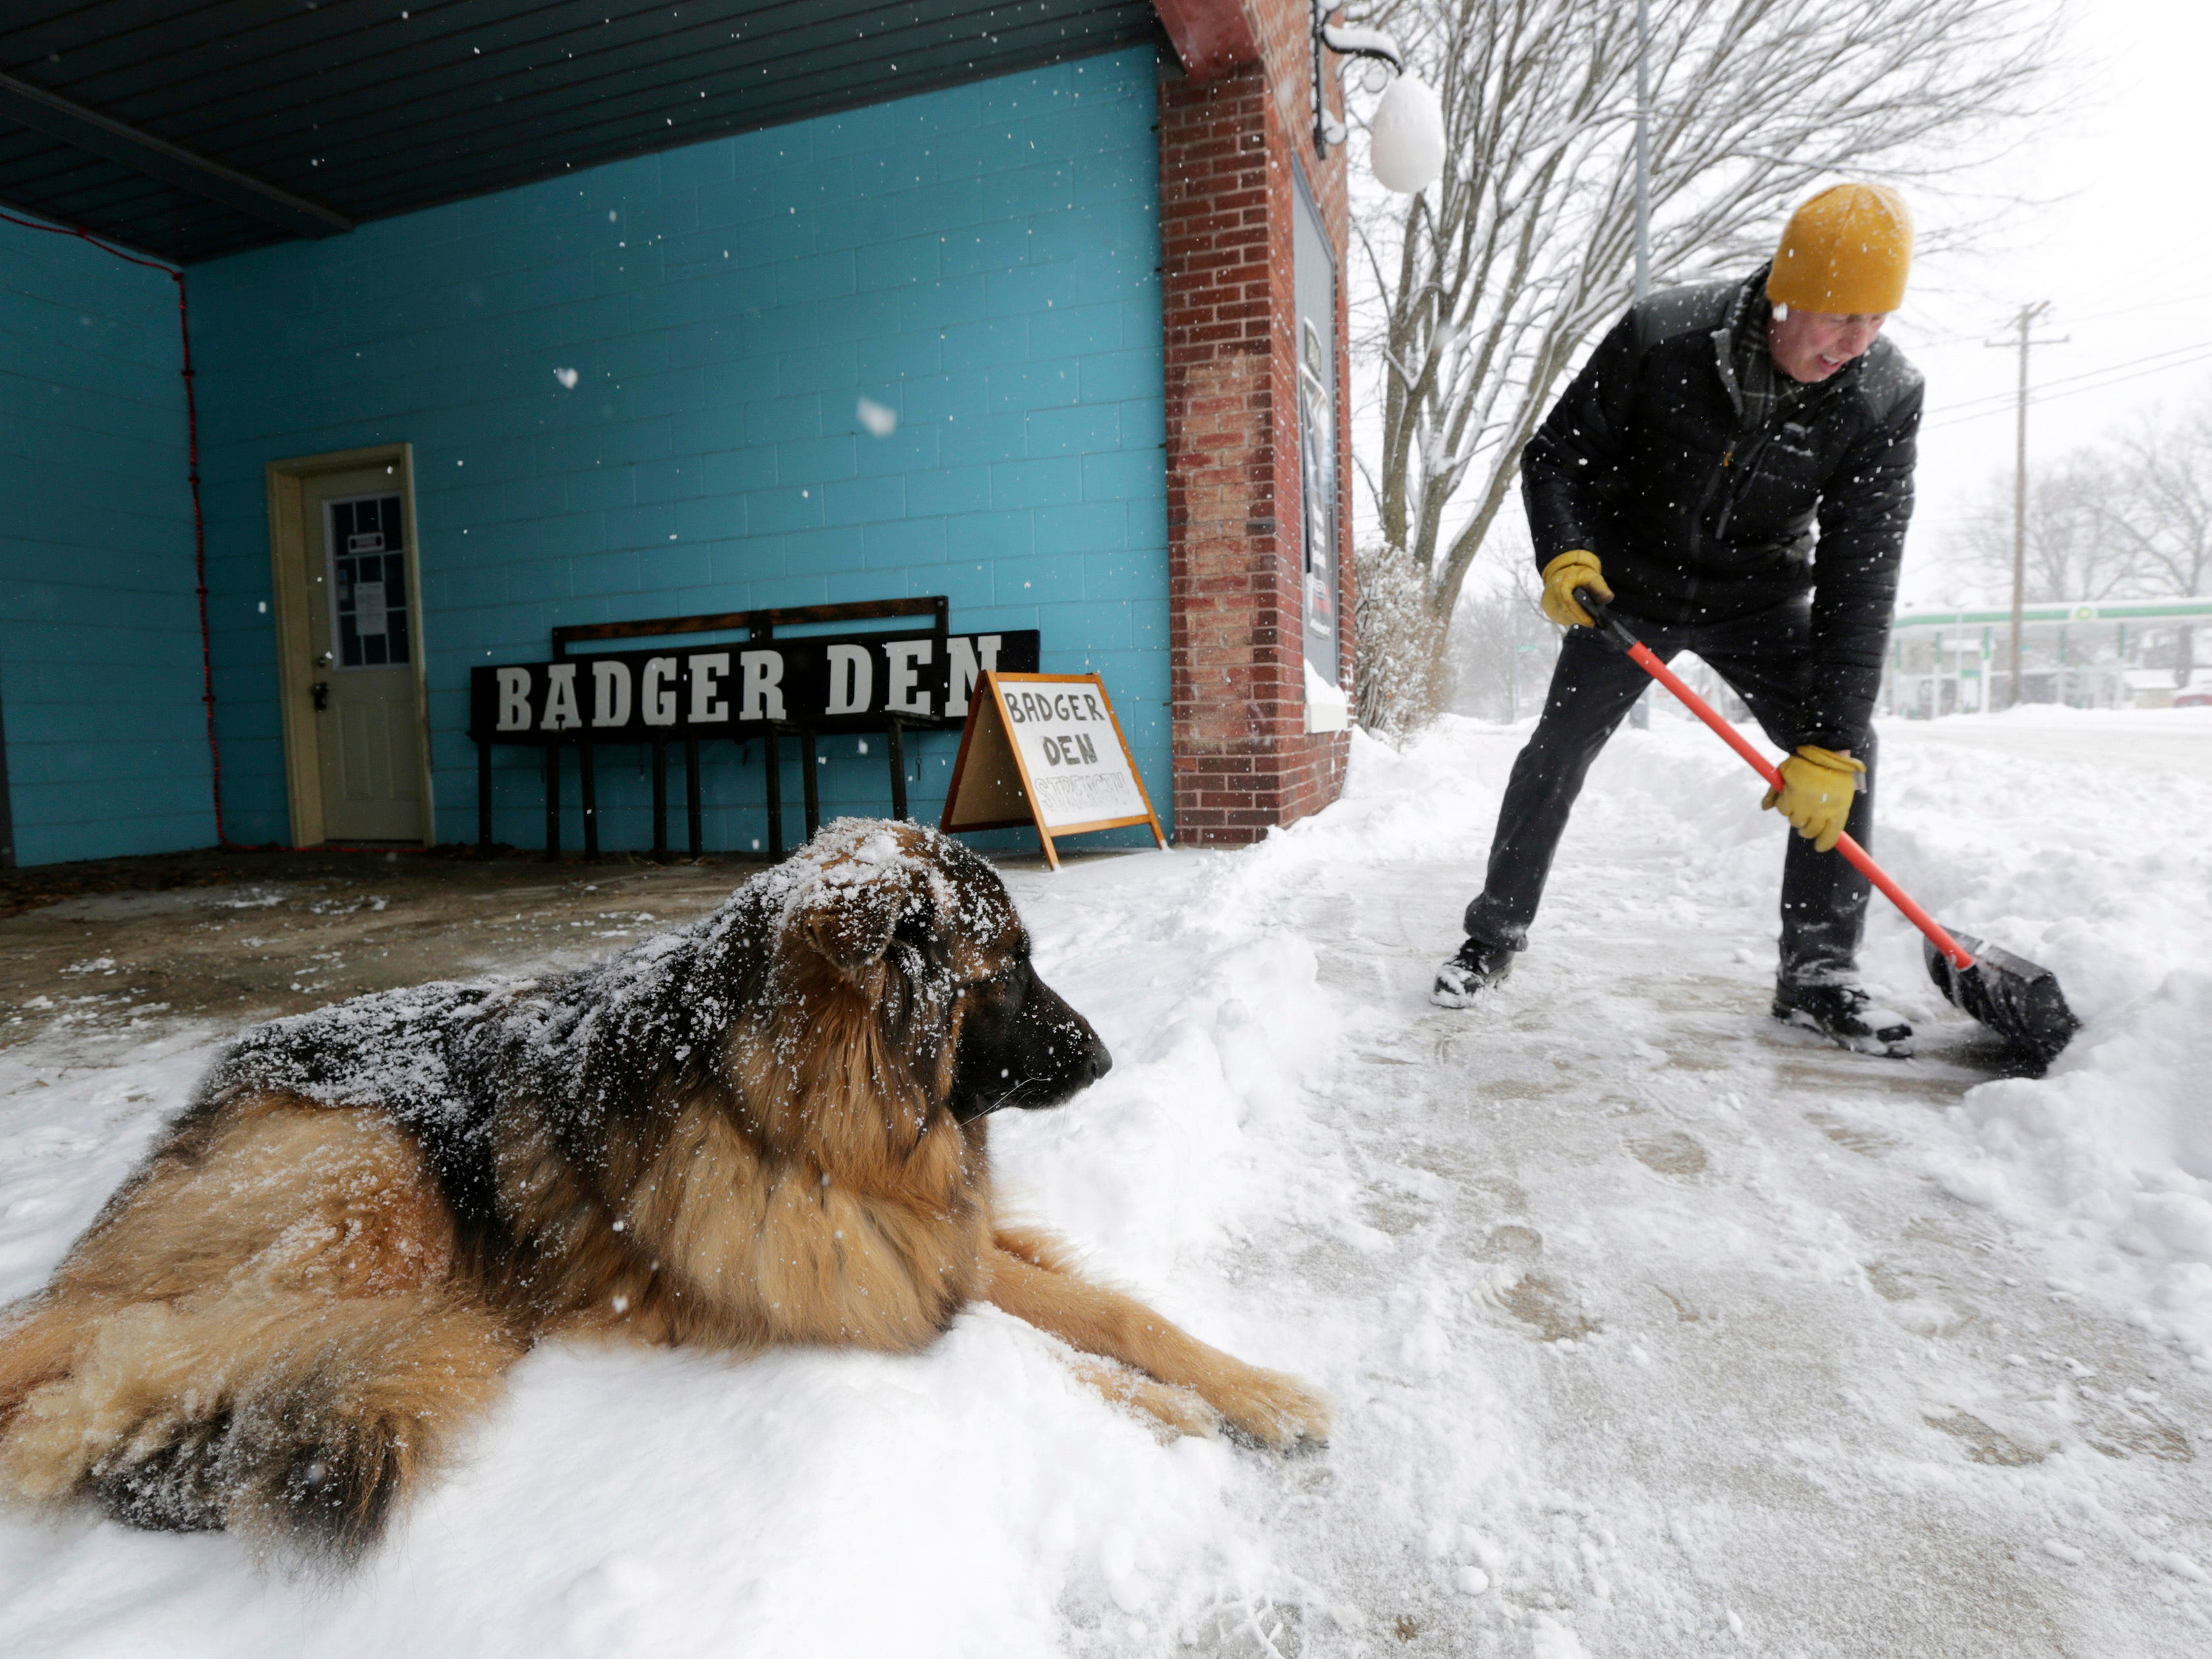 Jeff Waldman shovels the sidewalk at his Atwood Studios building as his dog, Bear, looks on during a snowstorm in Madison, Wis. on Jan. 23, 2019.